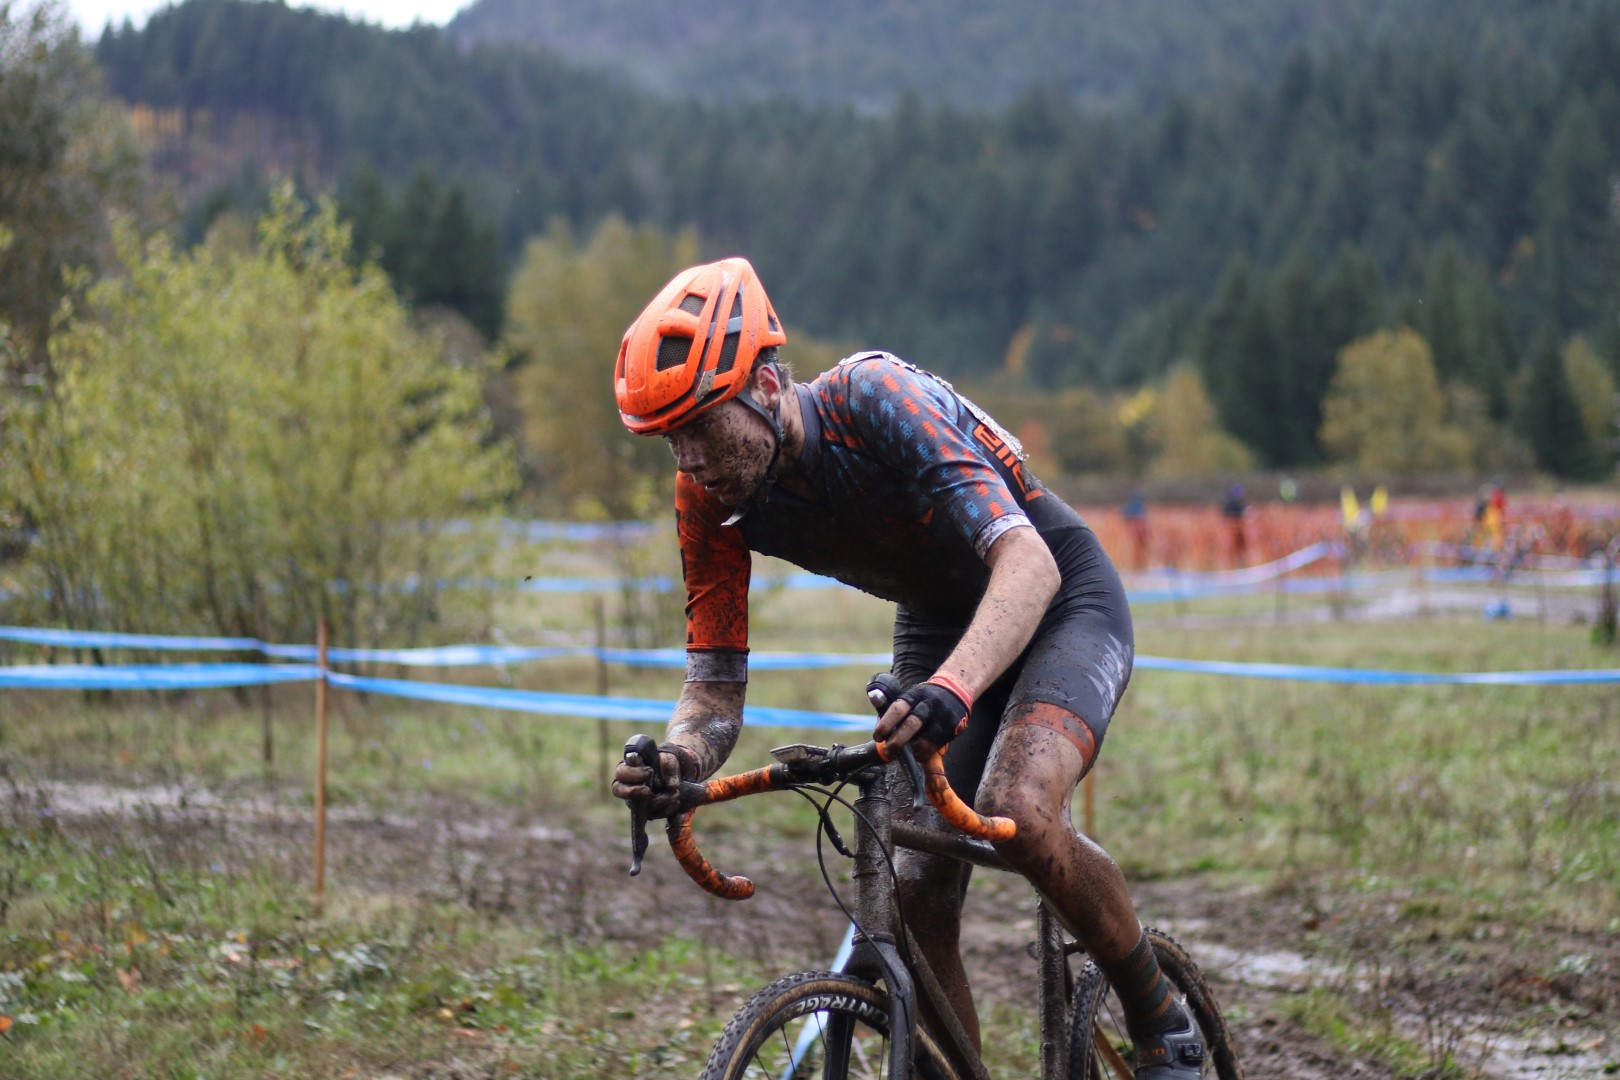 PDXTI-2018-CX-Crusade-04-Cascade-Locks (191).JPG